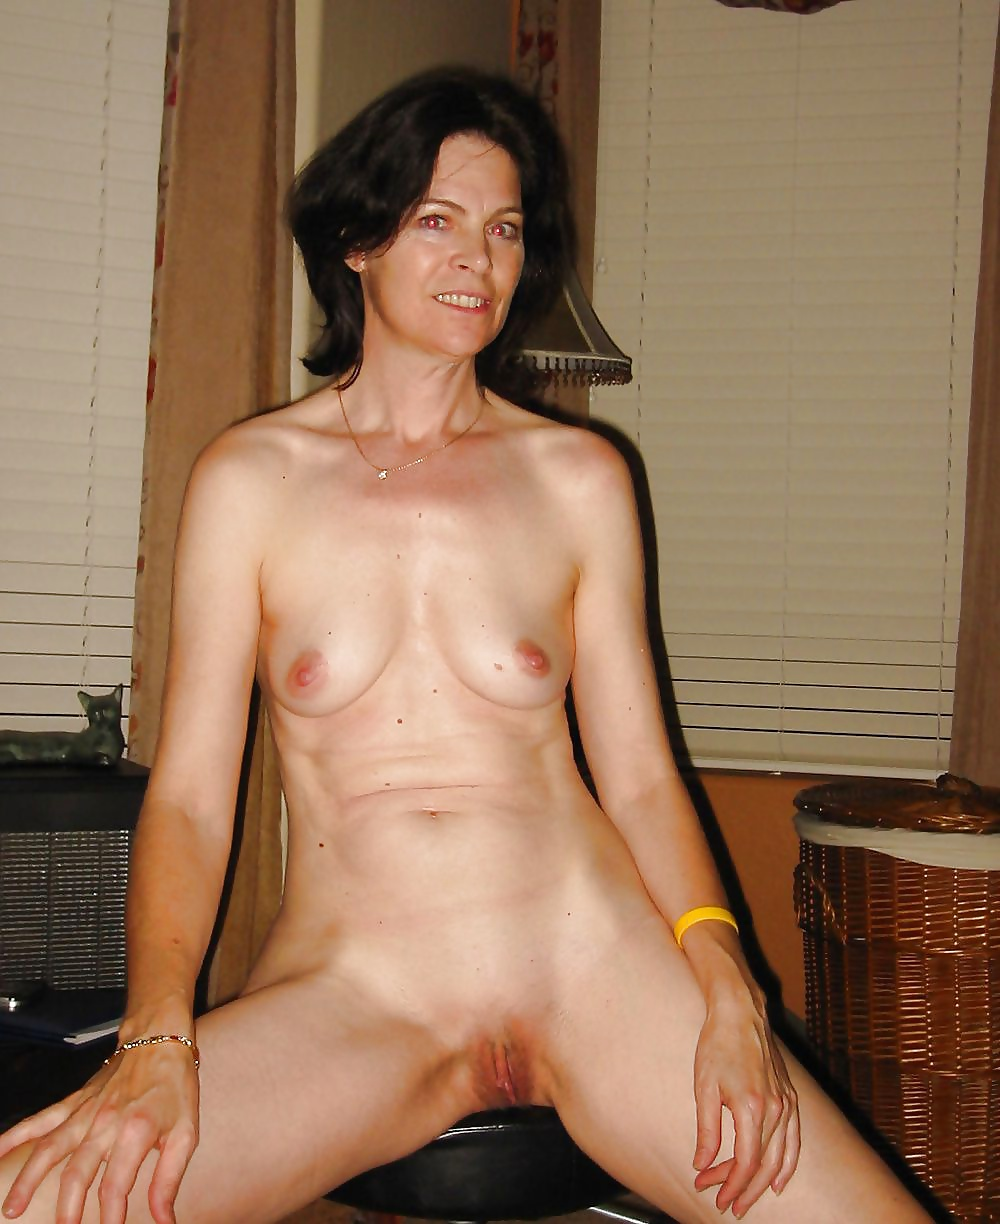 thin-amateur-milf-video-of-sex-faring-making-love